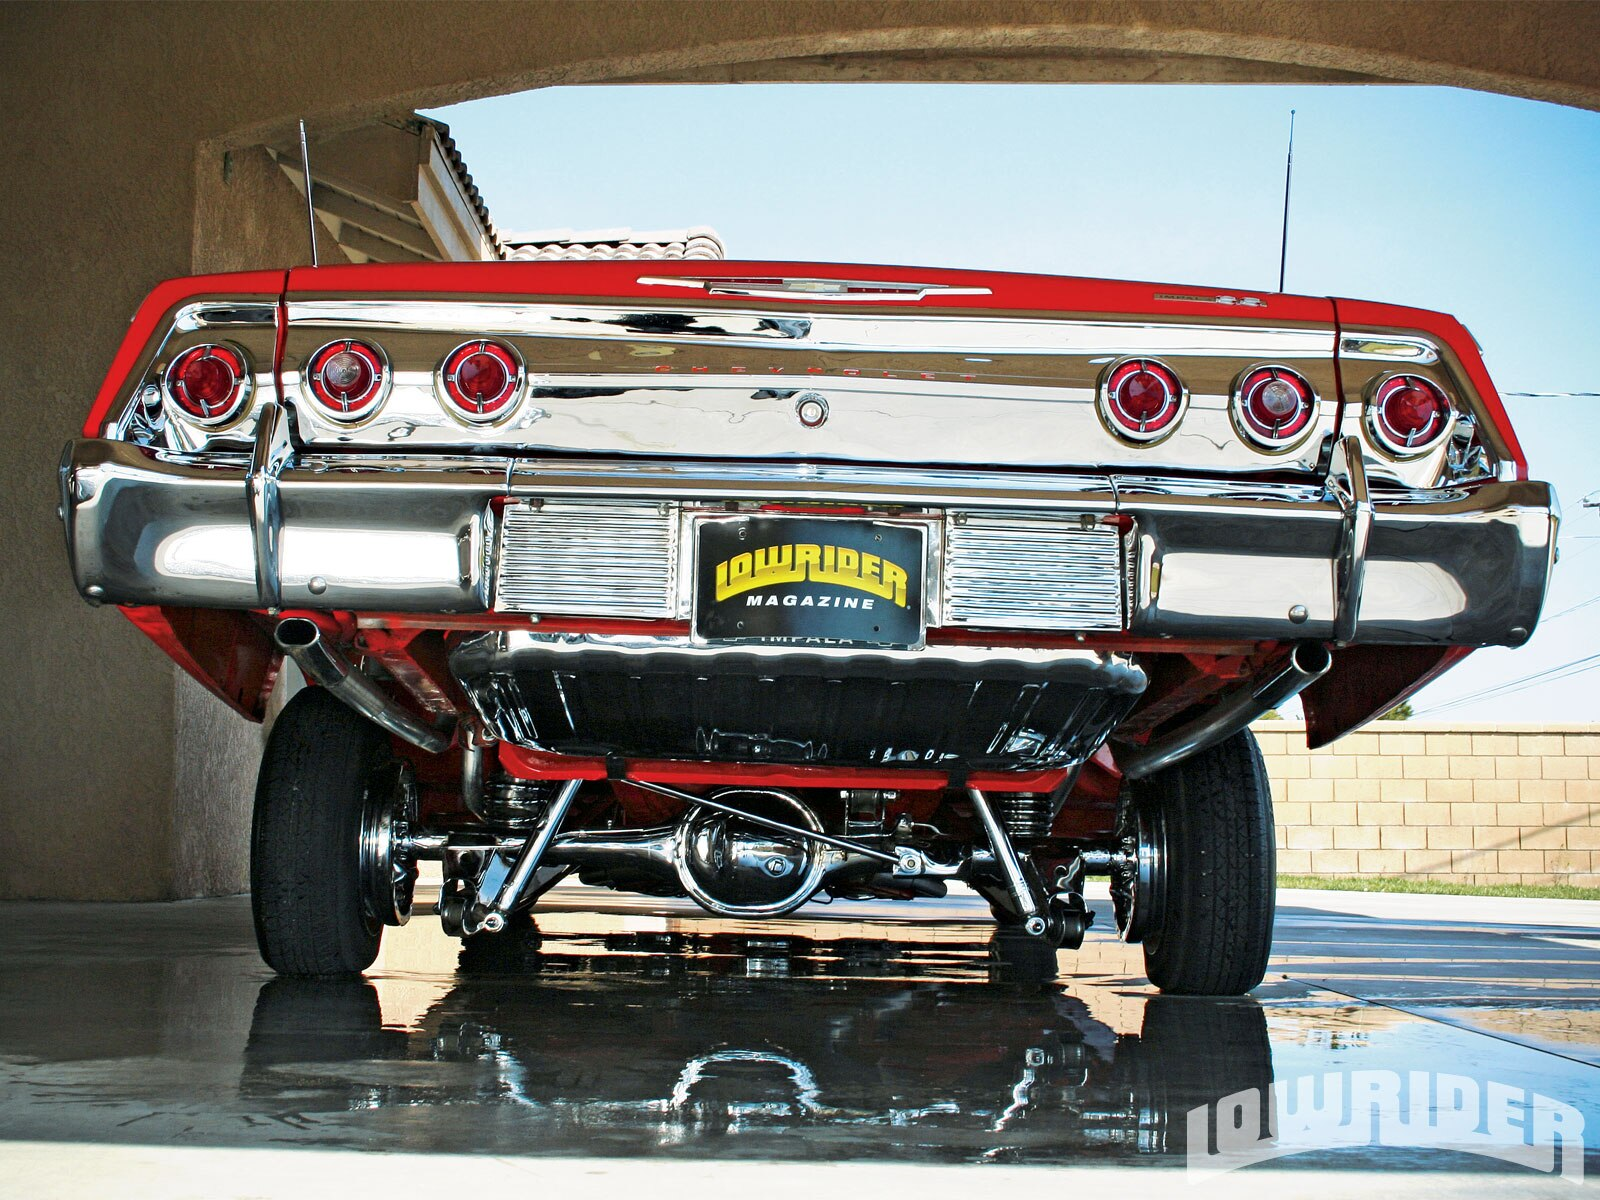 1962 Chevrolet Impala SS GM 327 Cid V8 Engine